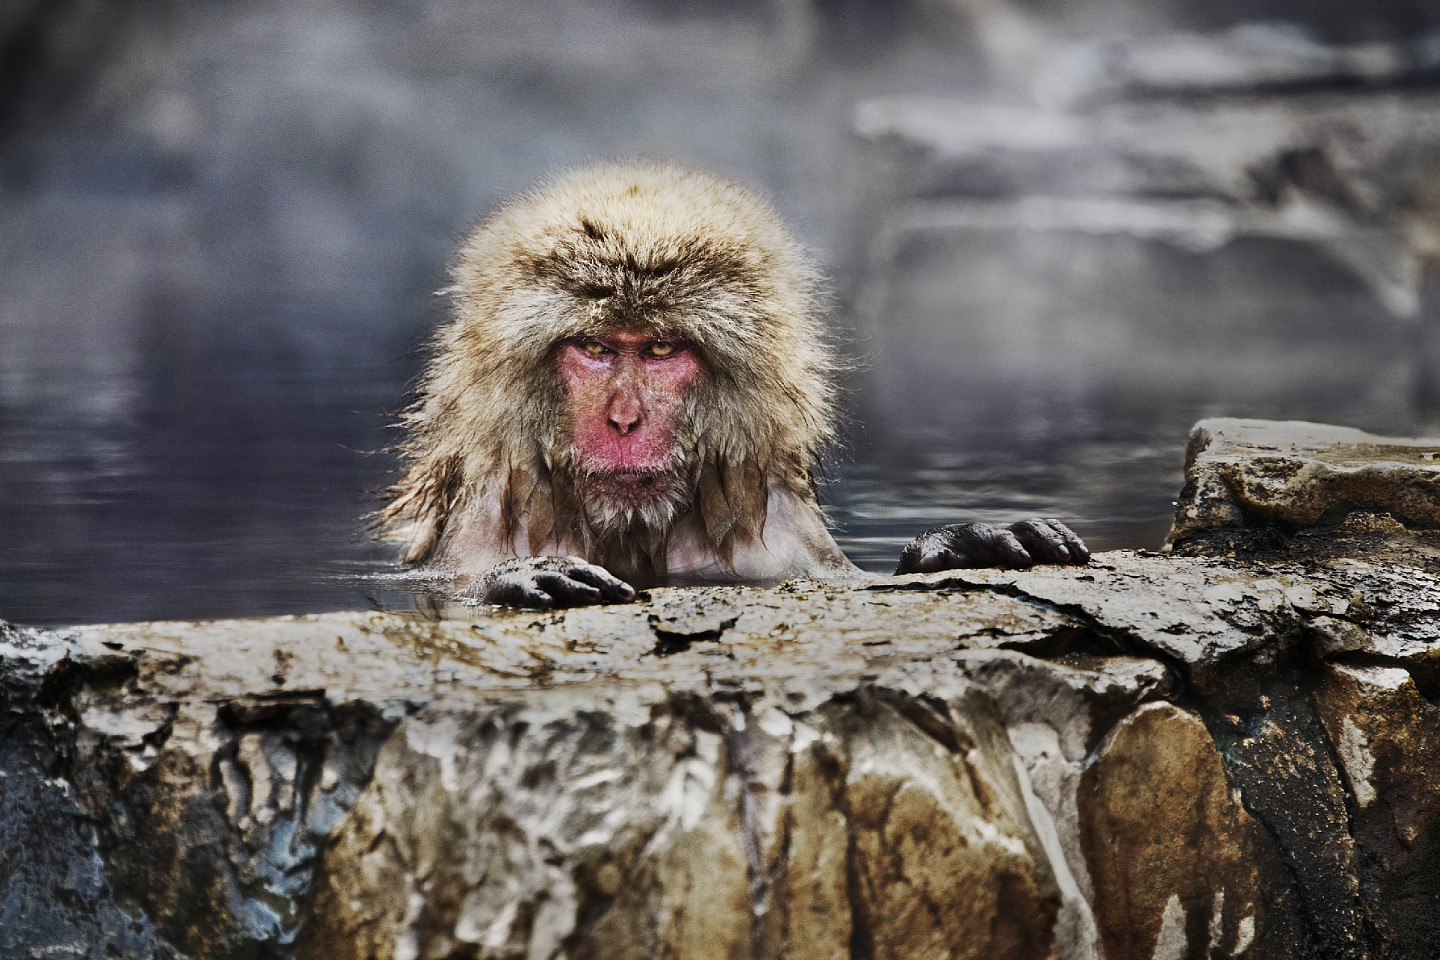 Steve McCurry ,   Snow Monkey in Jigokudani Yaen-koen Park, Japan  ,  2018     FujiFlex Crystal Archive Print ,  30 x 40 in. (76.2 x 101.6 cm)     JAPAN-10315